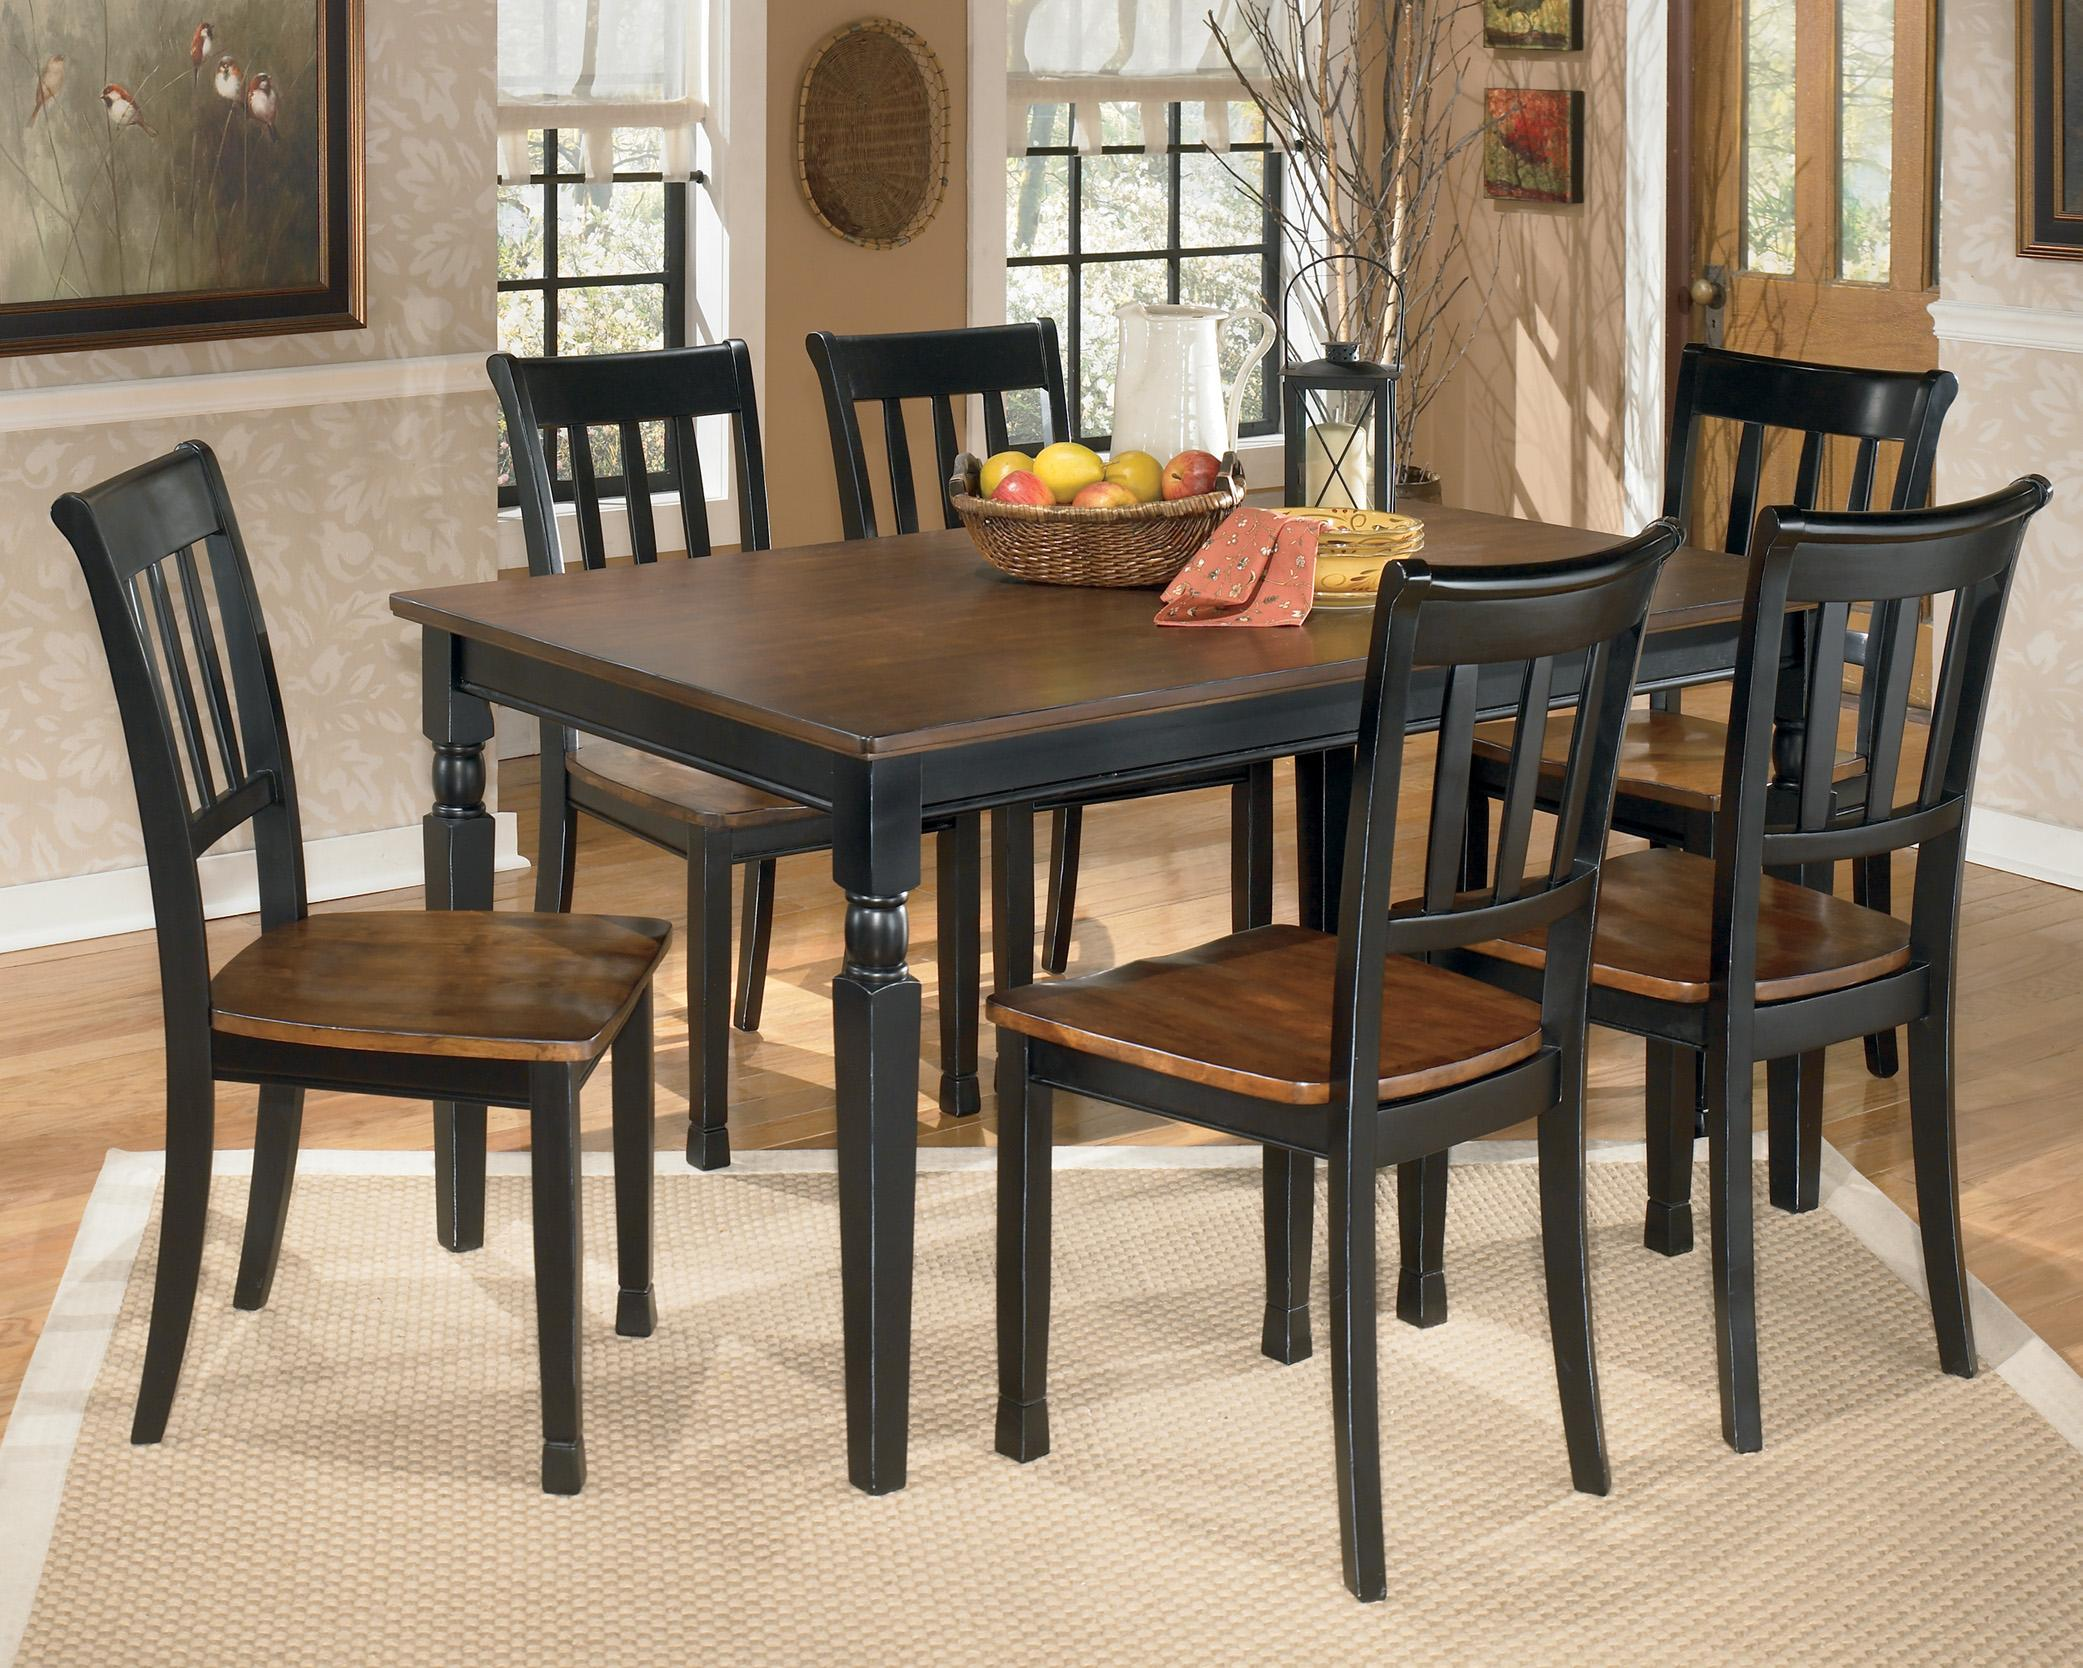 dining table set 6 chairs eddie bauer high chair replacement pad signature design by ashley owingsville 7 piece rectangular